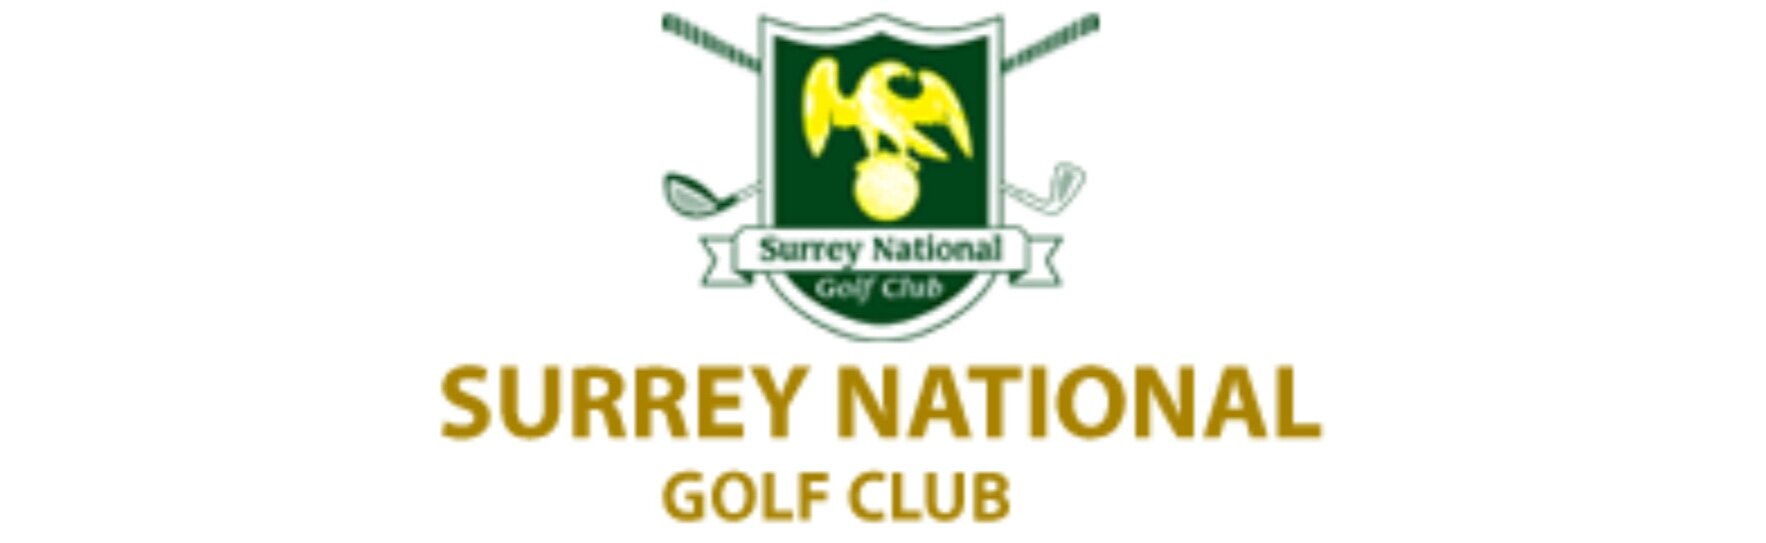 Surrey+National+Golf+Club+Recommended+Supplier